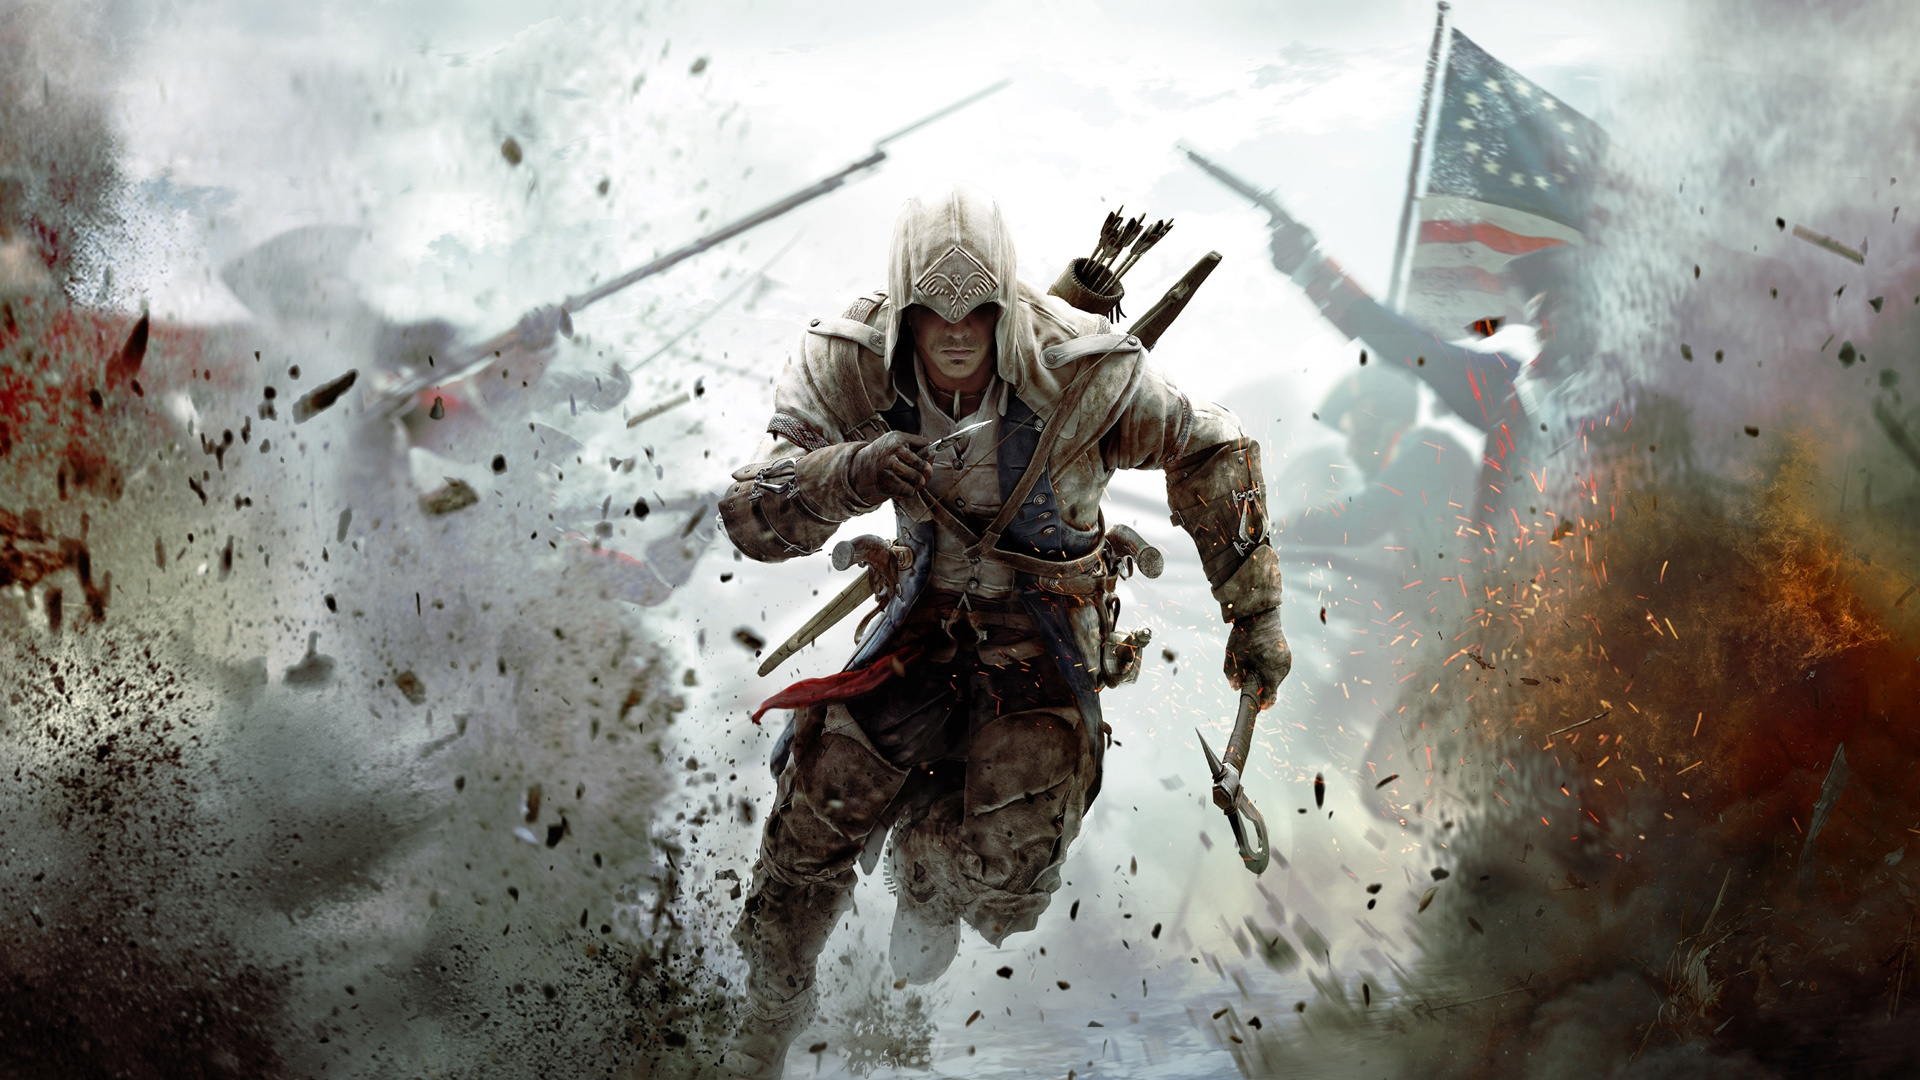 Assassins Creed 3 2012 Game Wallpaper Hd 1080p Pictures Photos 1920x1080